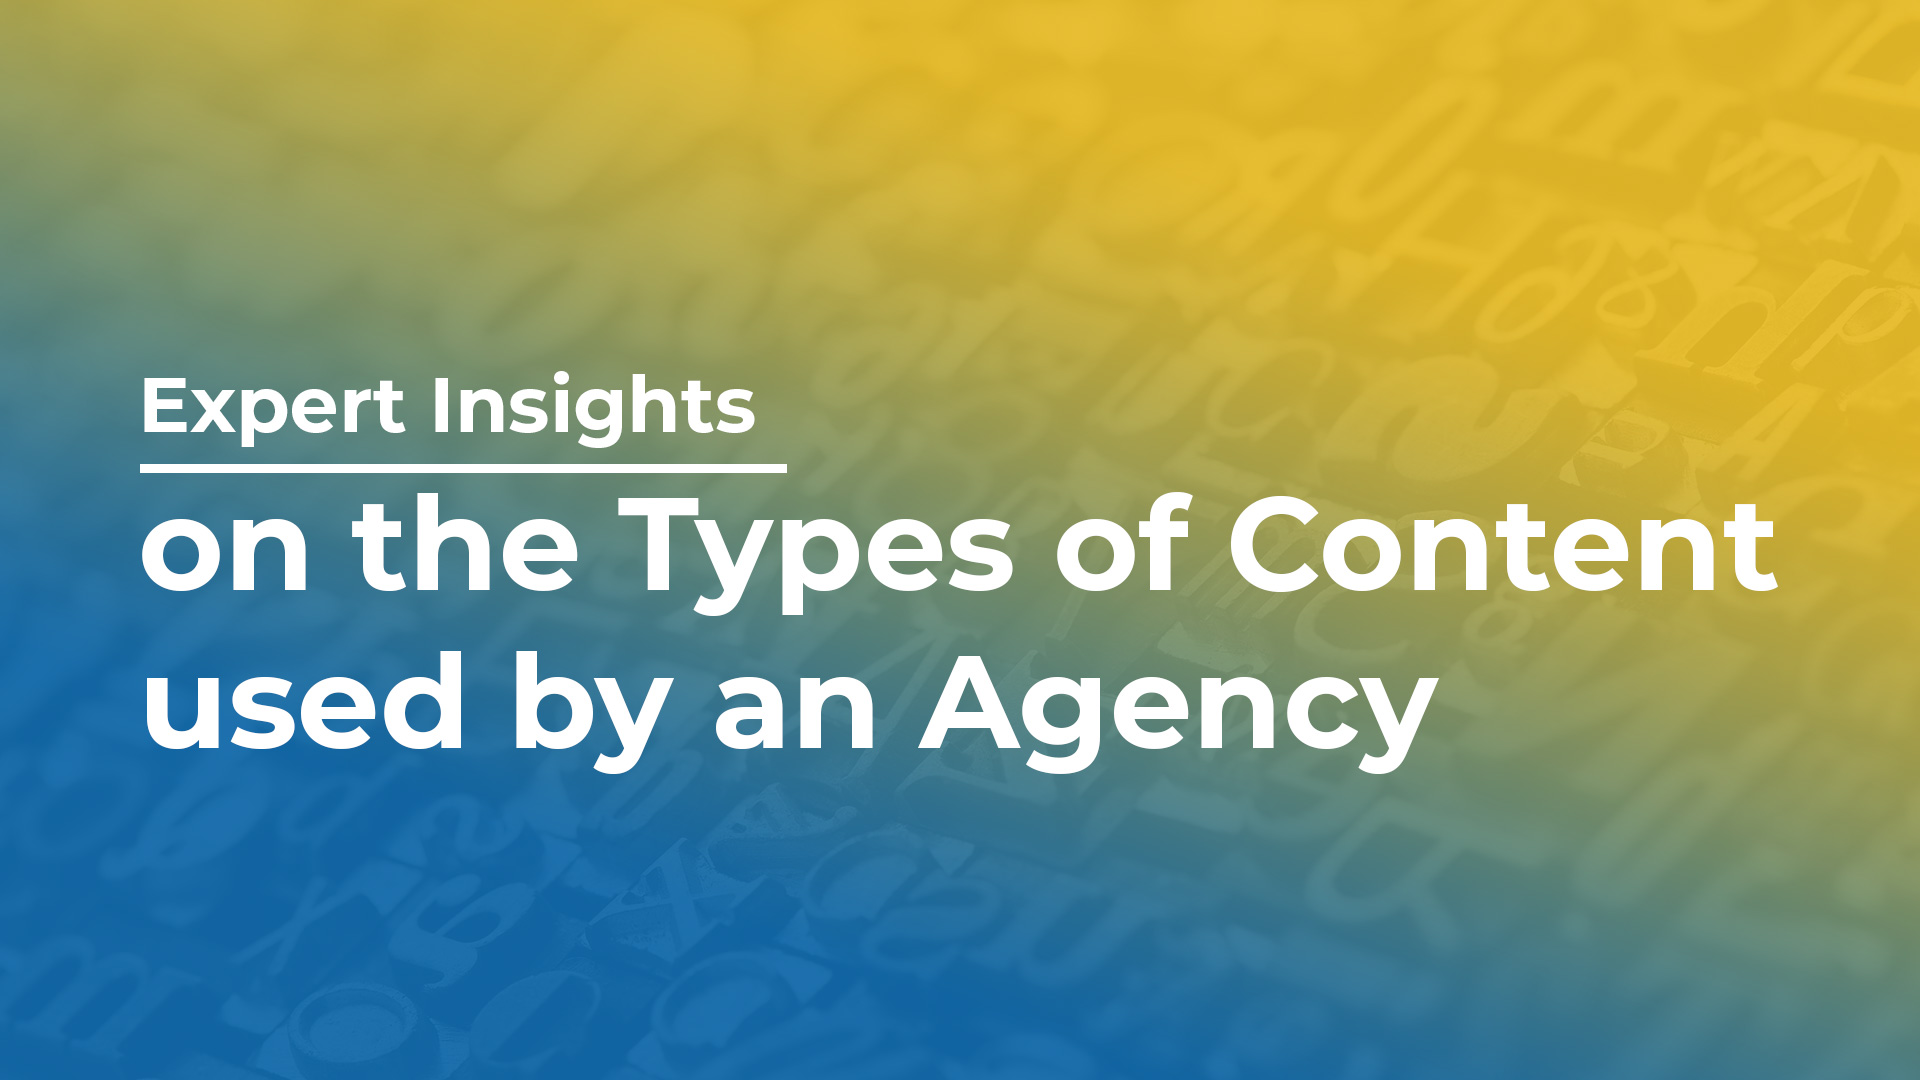 Expert Insights on the Types of Content used by an Agency